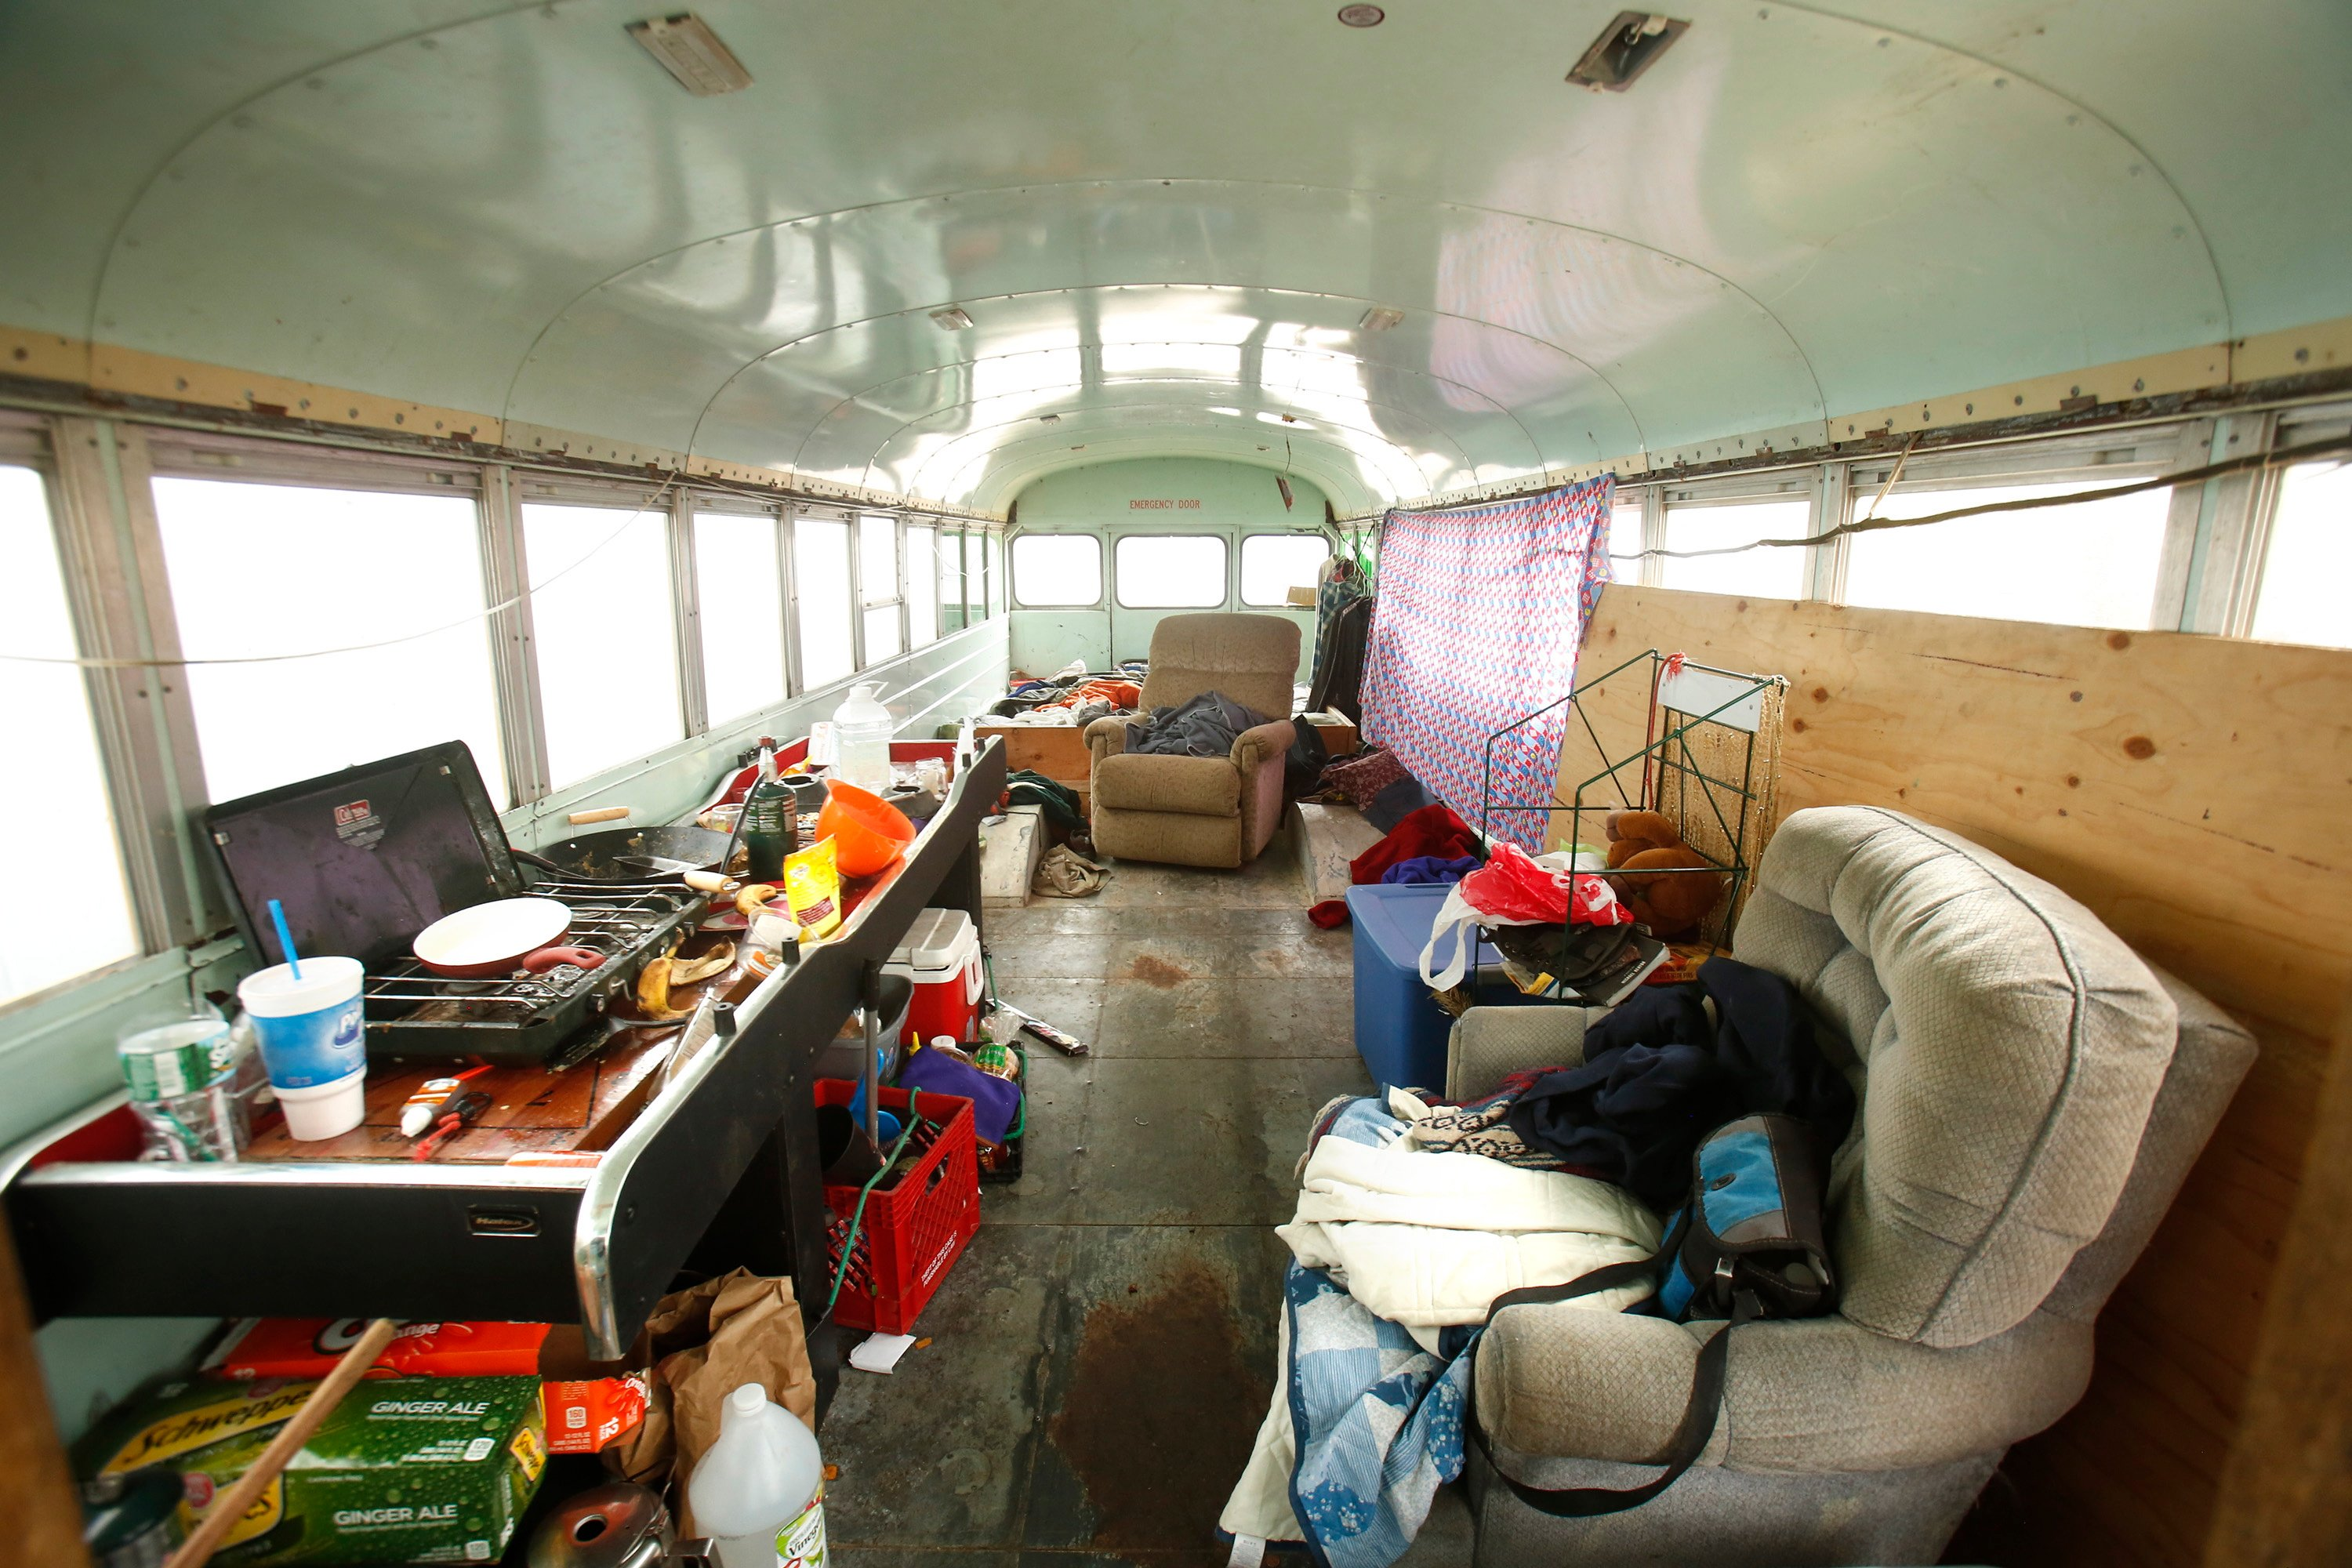 Nomad to stay in Maine longer, even with decrepit bus ...